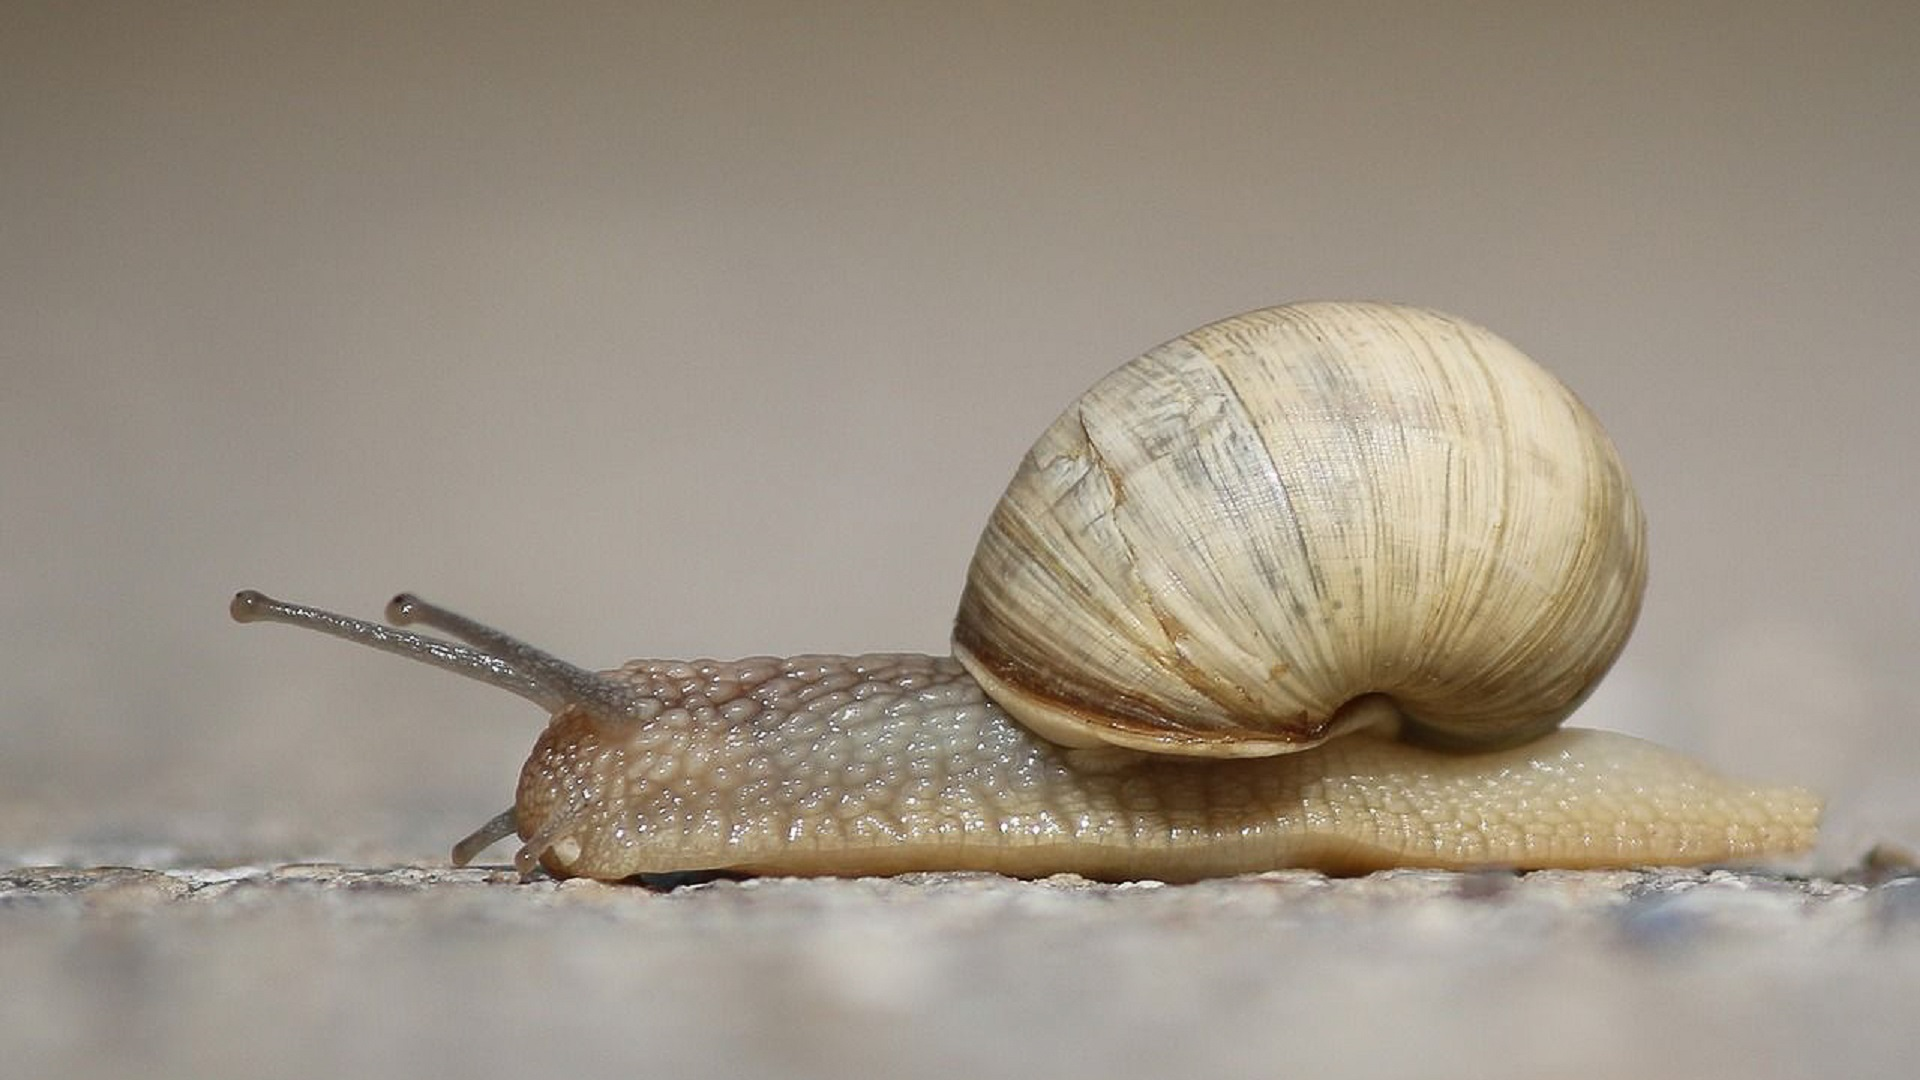 Most of the snails are exported to France